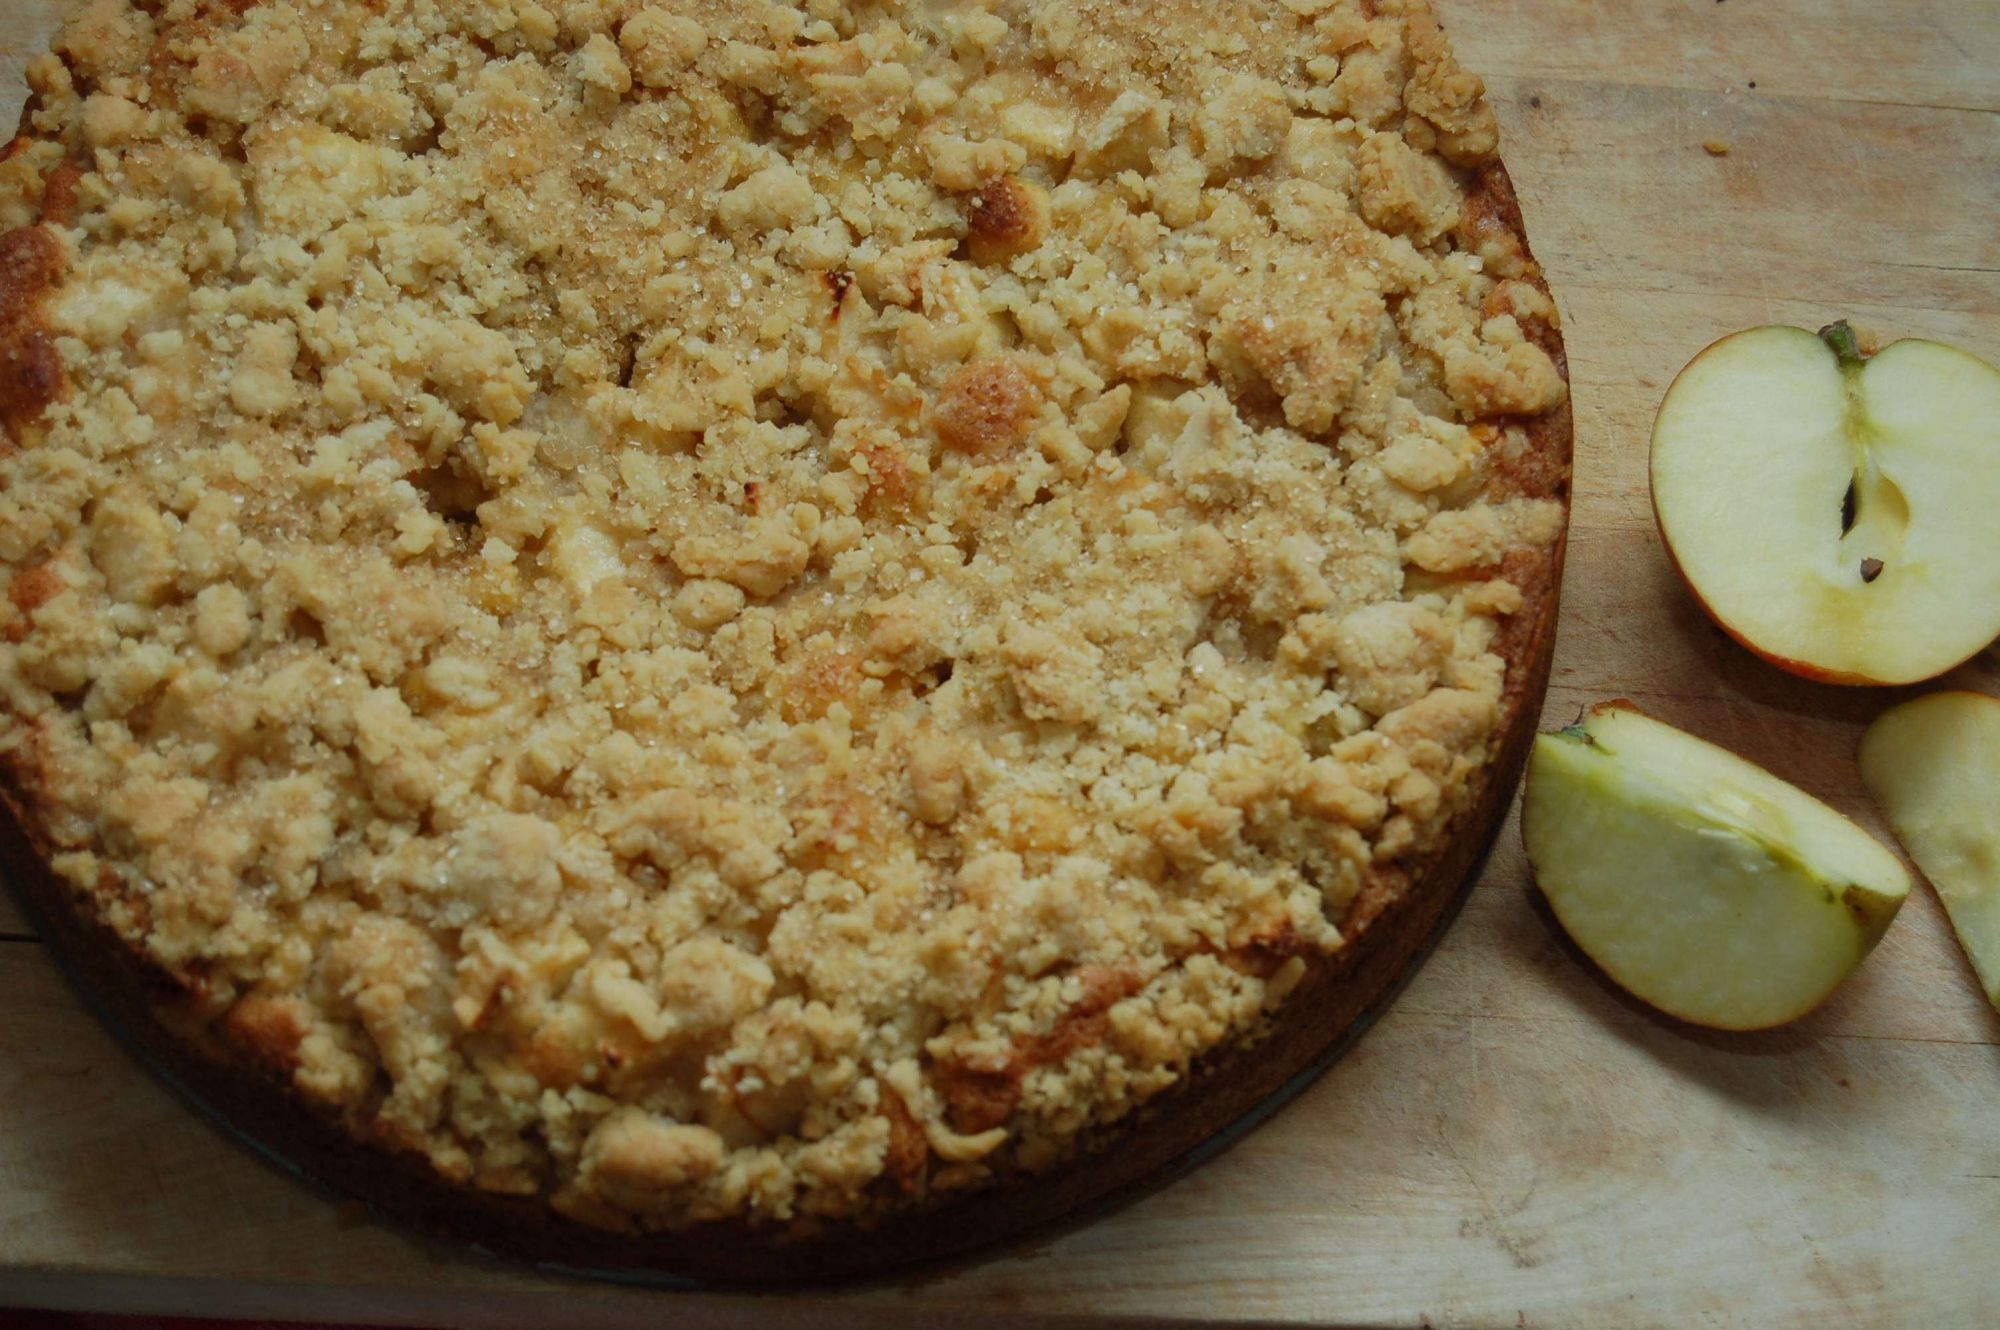 Recipe: Apple and Marzipan Crumble Cake, rated 3.8/5 - 132 votes